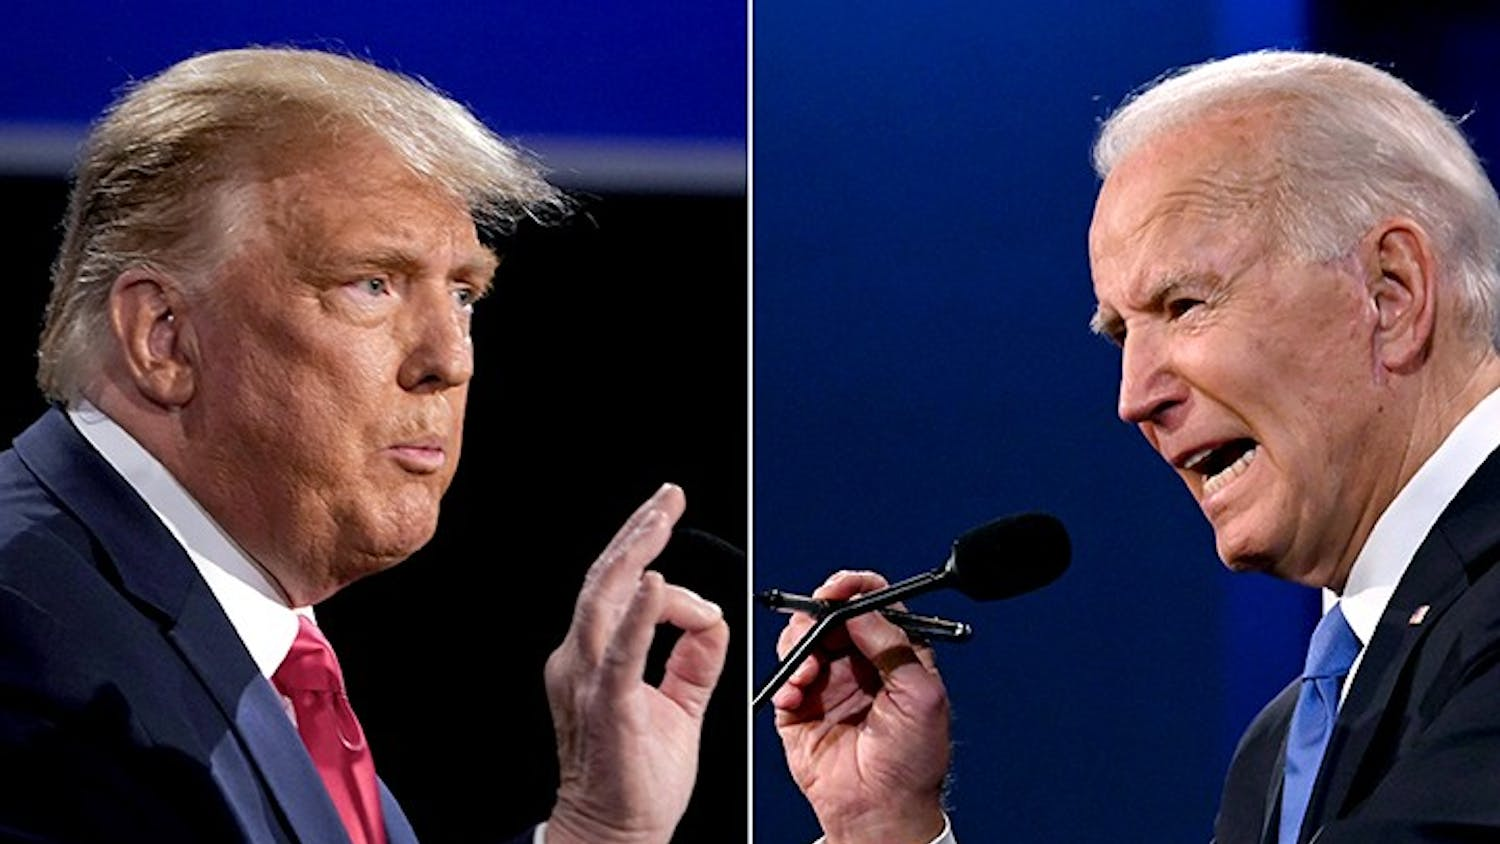 President Donald Trump (left) and President-elect Joe Biden (right) participated in the final presidential debate on Oct. 22, 2020.